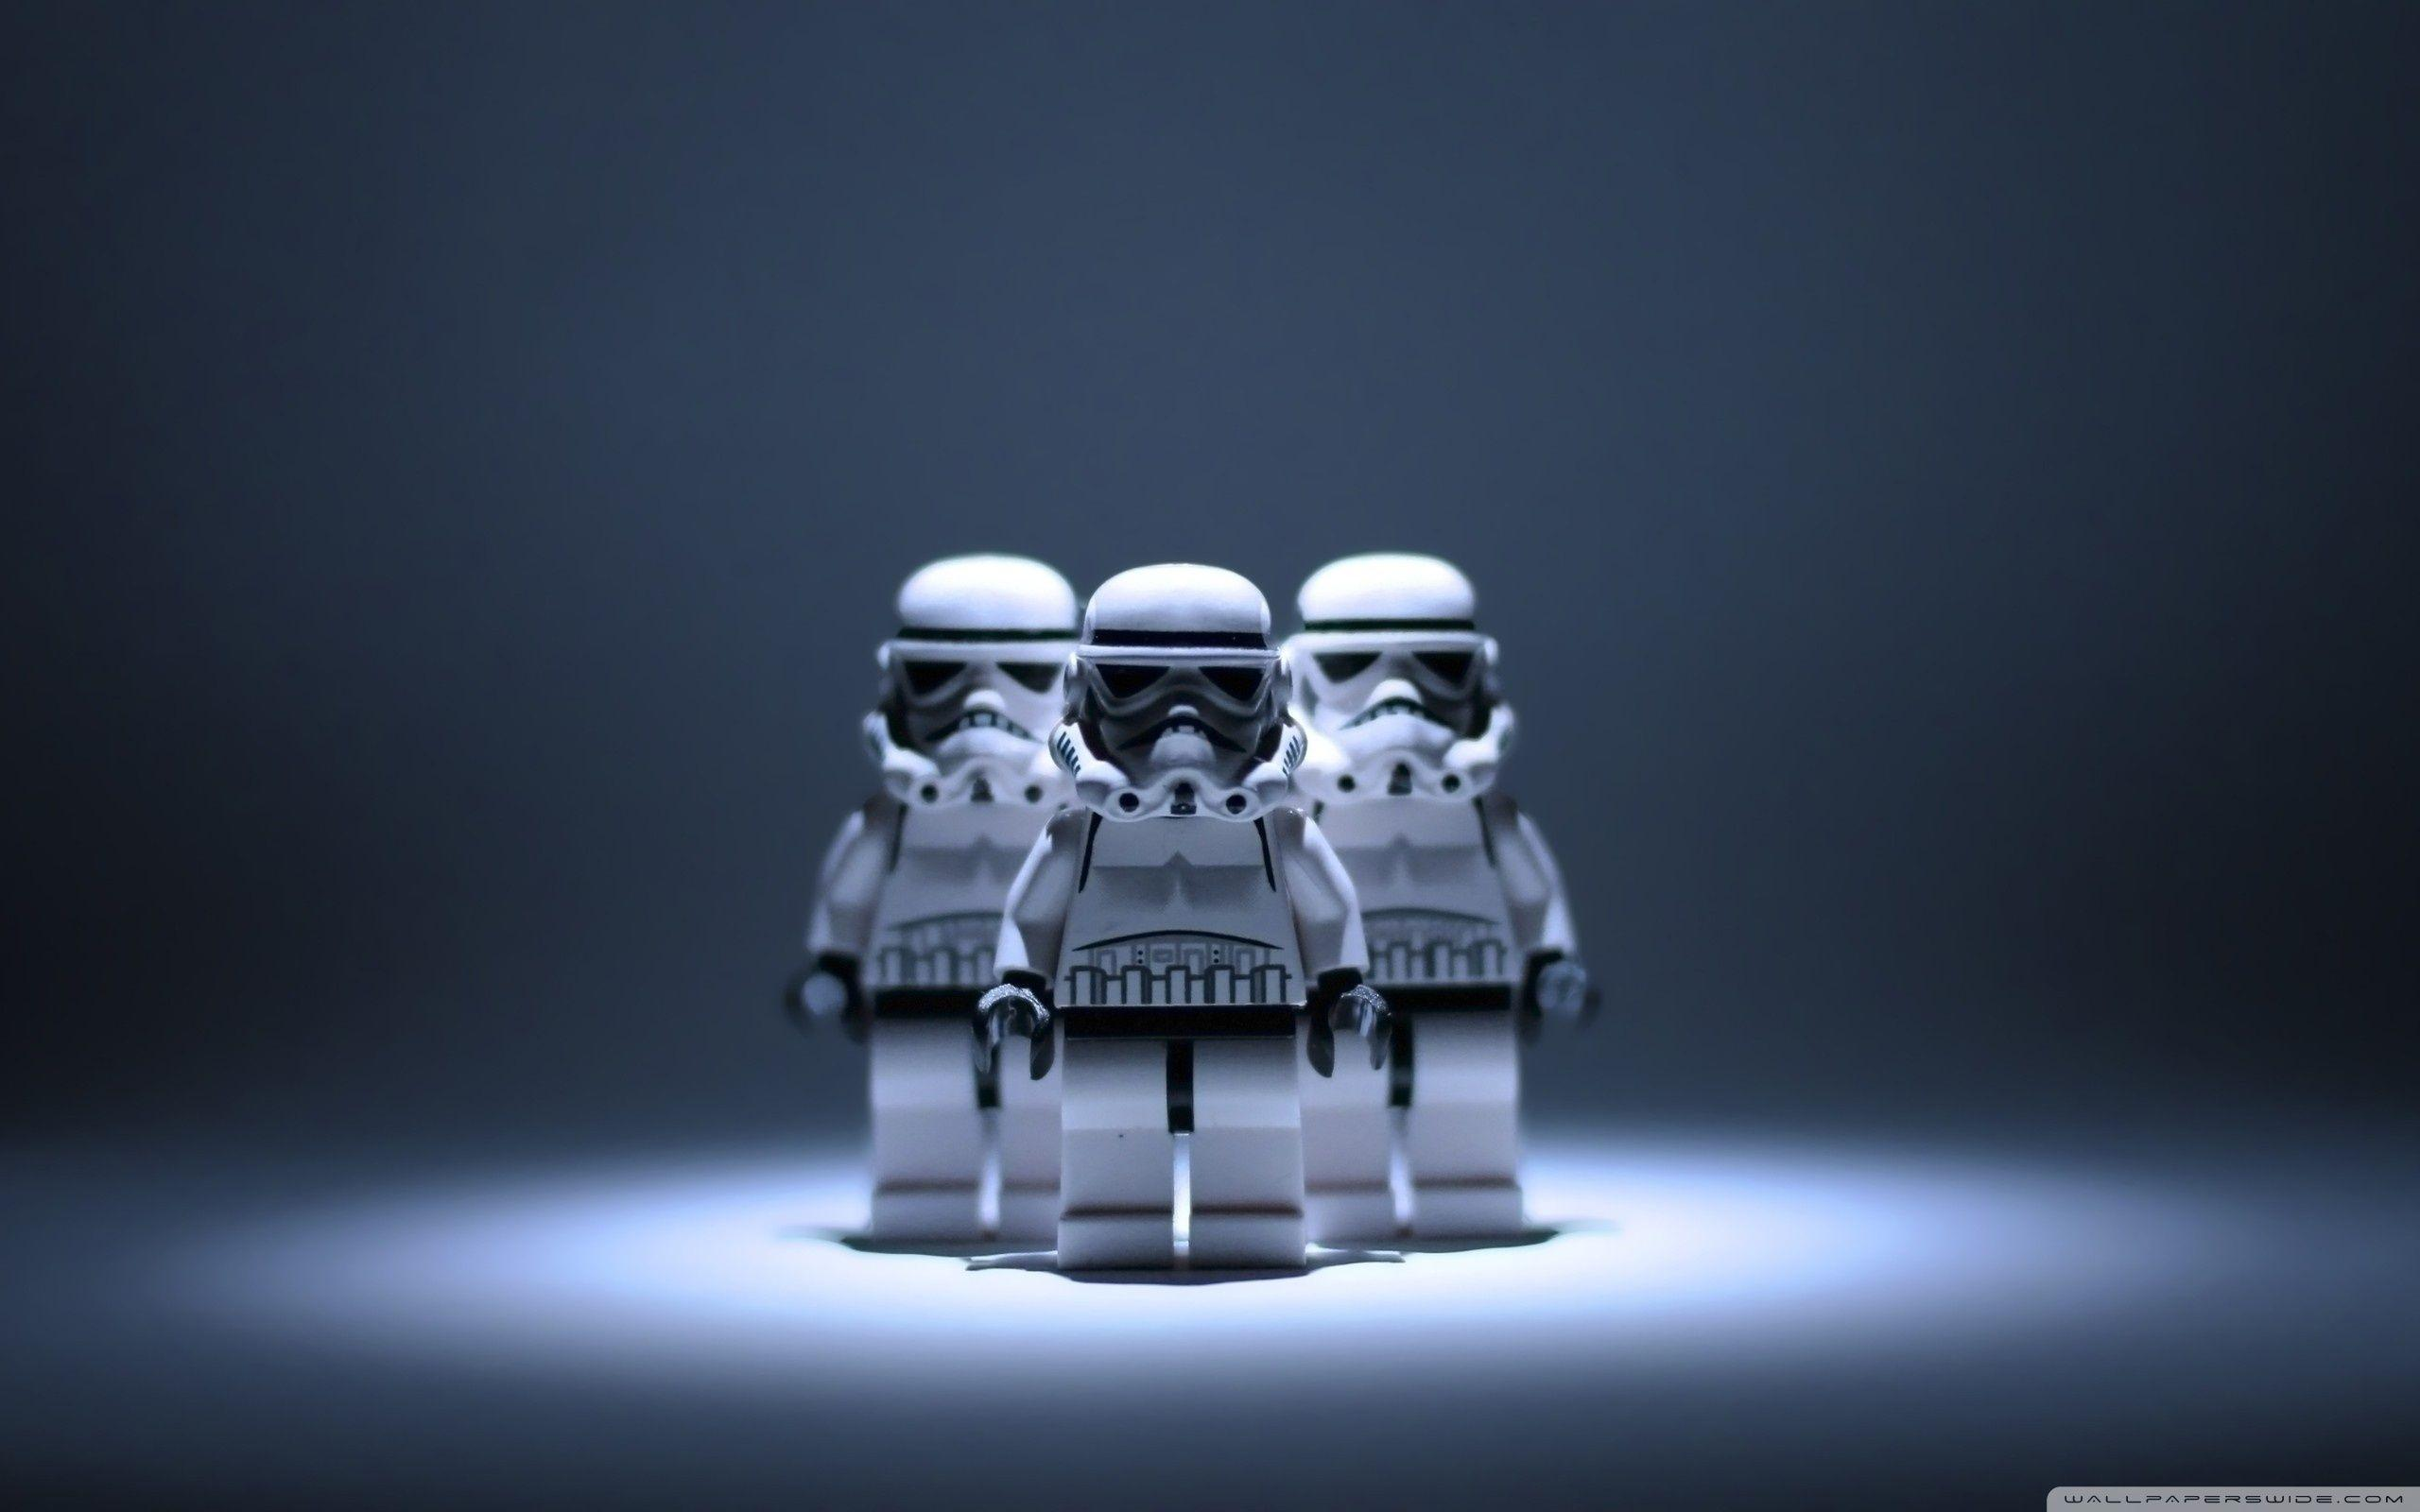 Star Wars Lego Wallpapers Wallpaper Cave Images, Photos, Reviews